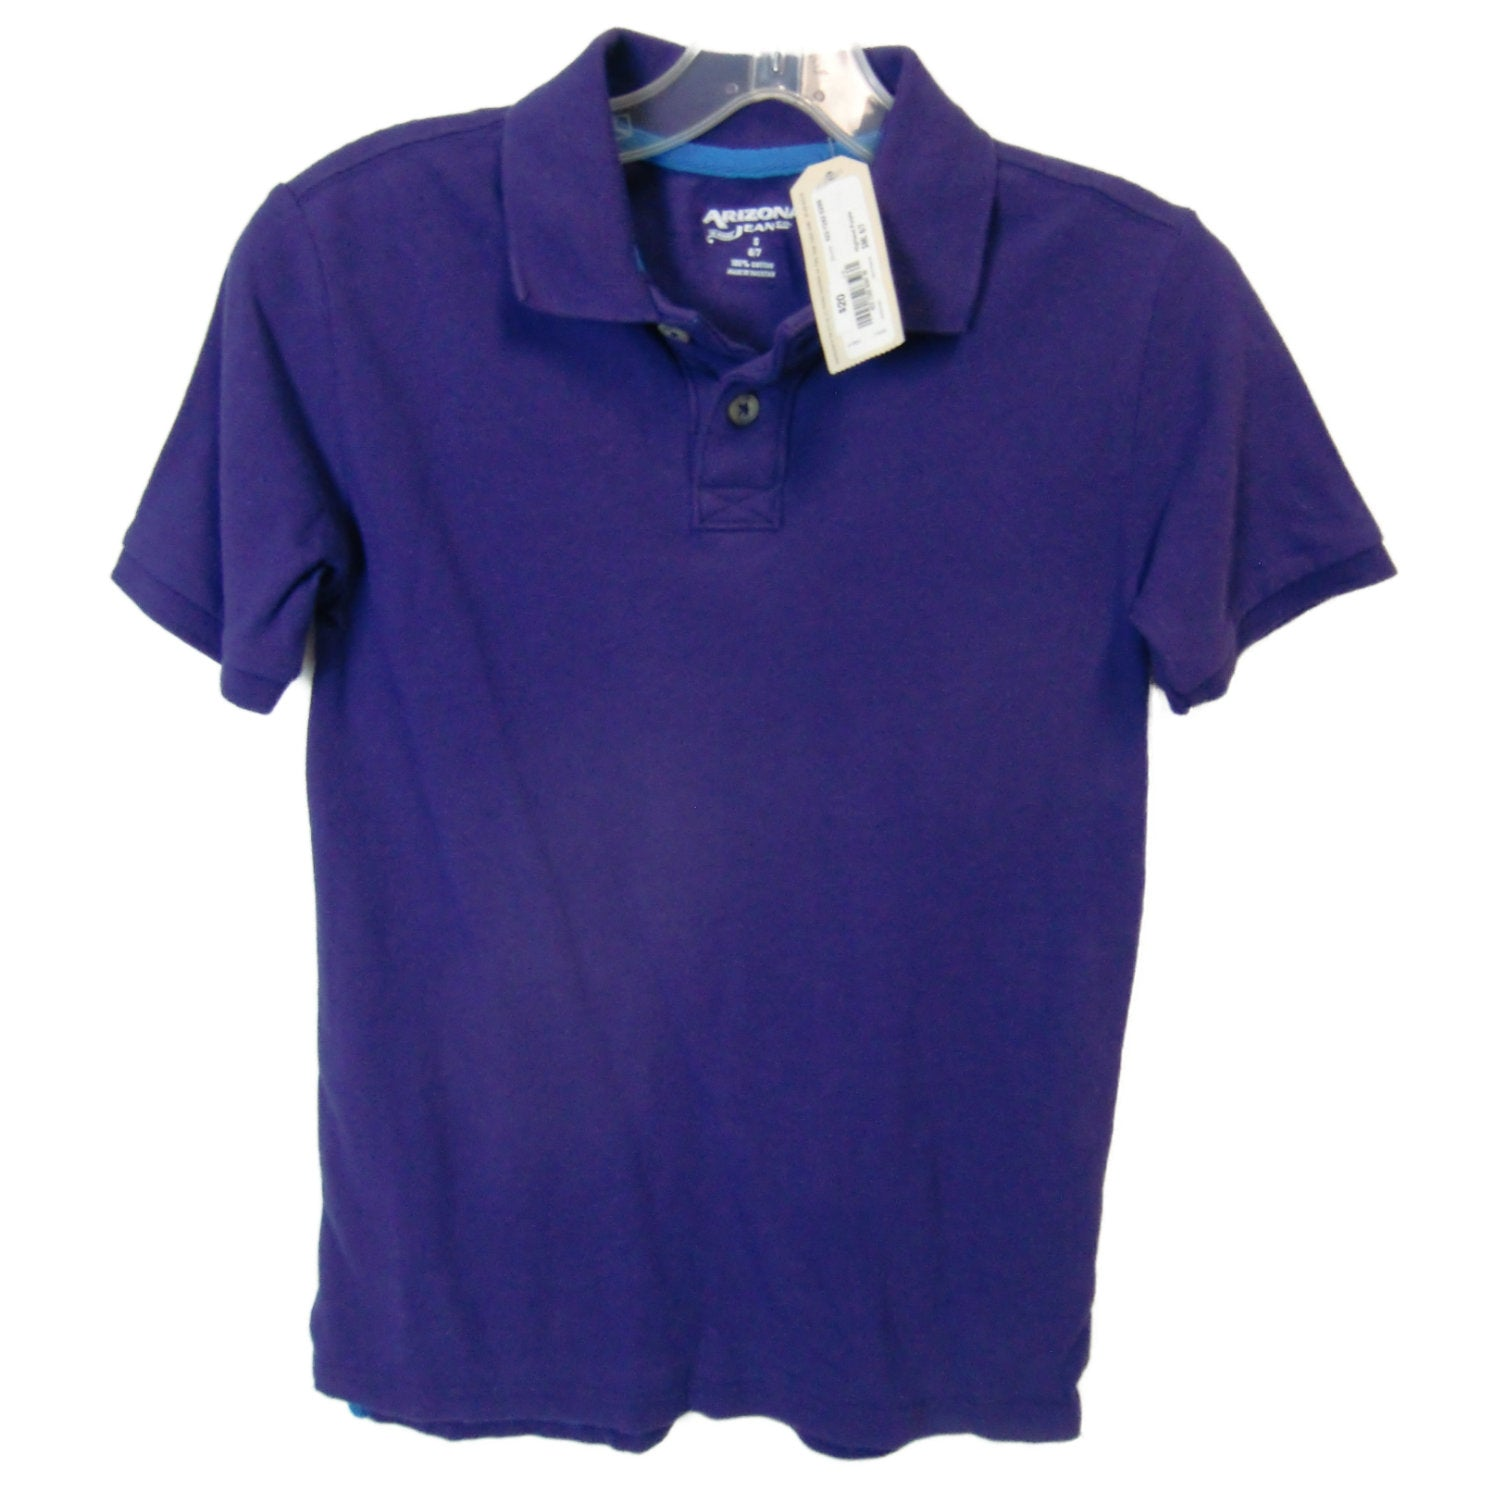 new boys purple polo shirt